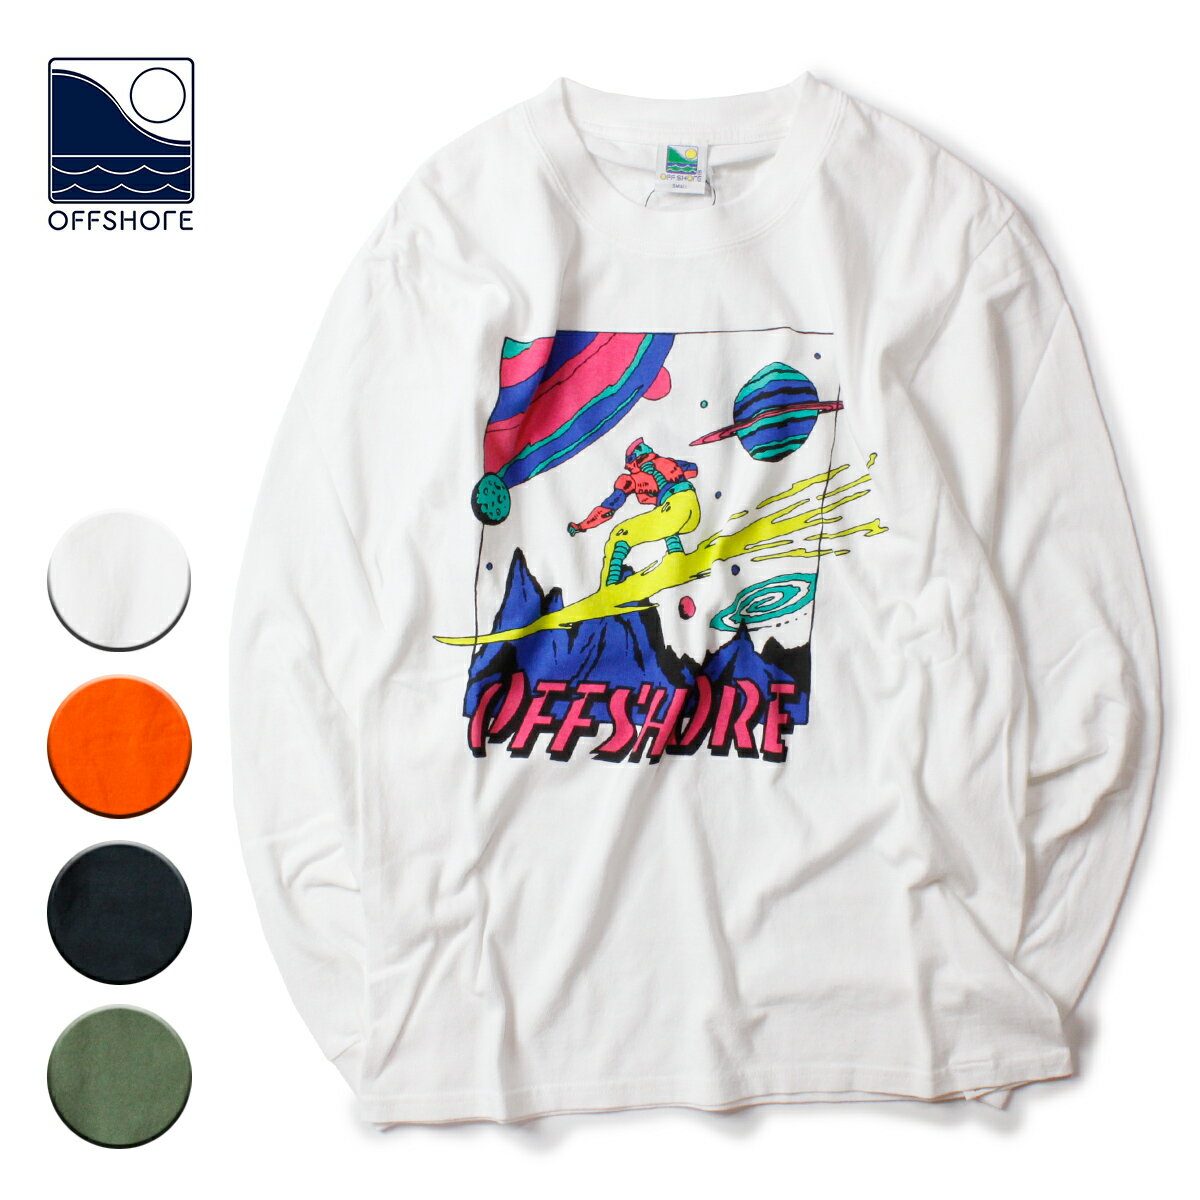 トップス, Tシャツ・カットソー OFFSHORE SPACE SURFER LS TEE S-XL OS19-1CS-006T T 90s